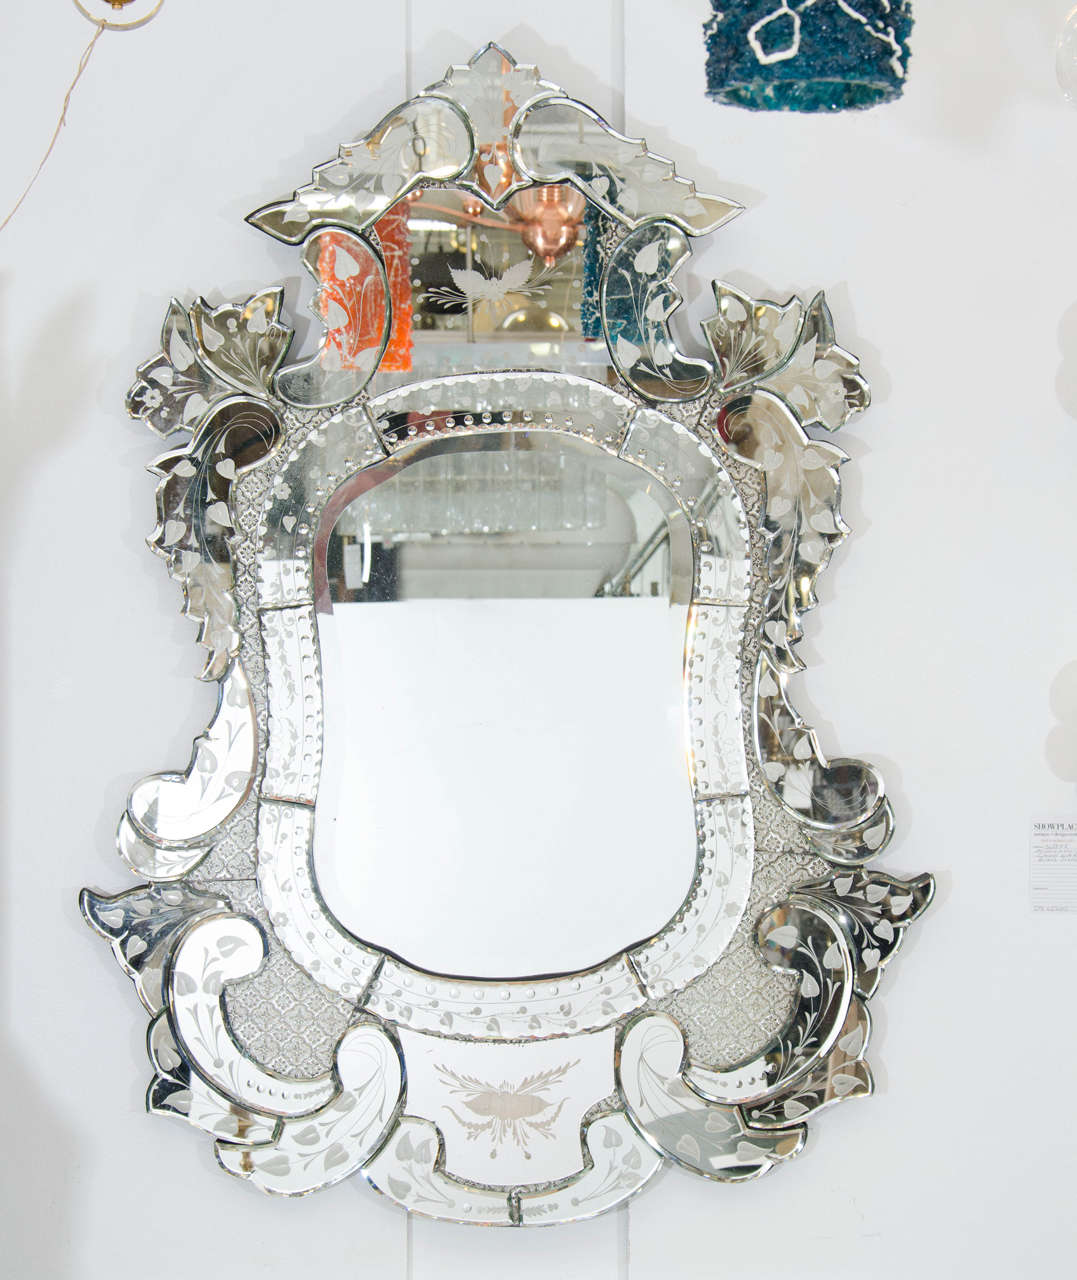 A Vintage Ornately Carved Etched Venetian Wall Mirror With Leaf Motif Hammered Silver Detailing